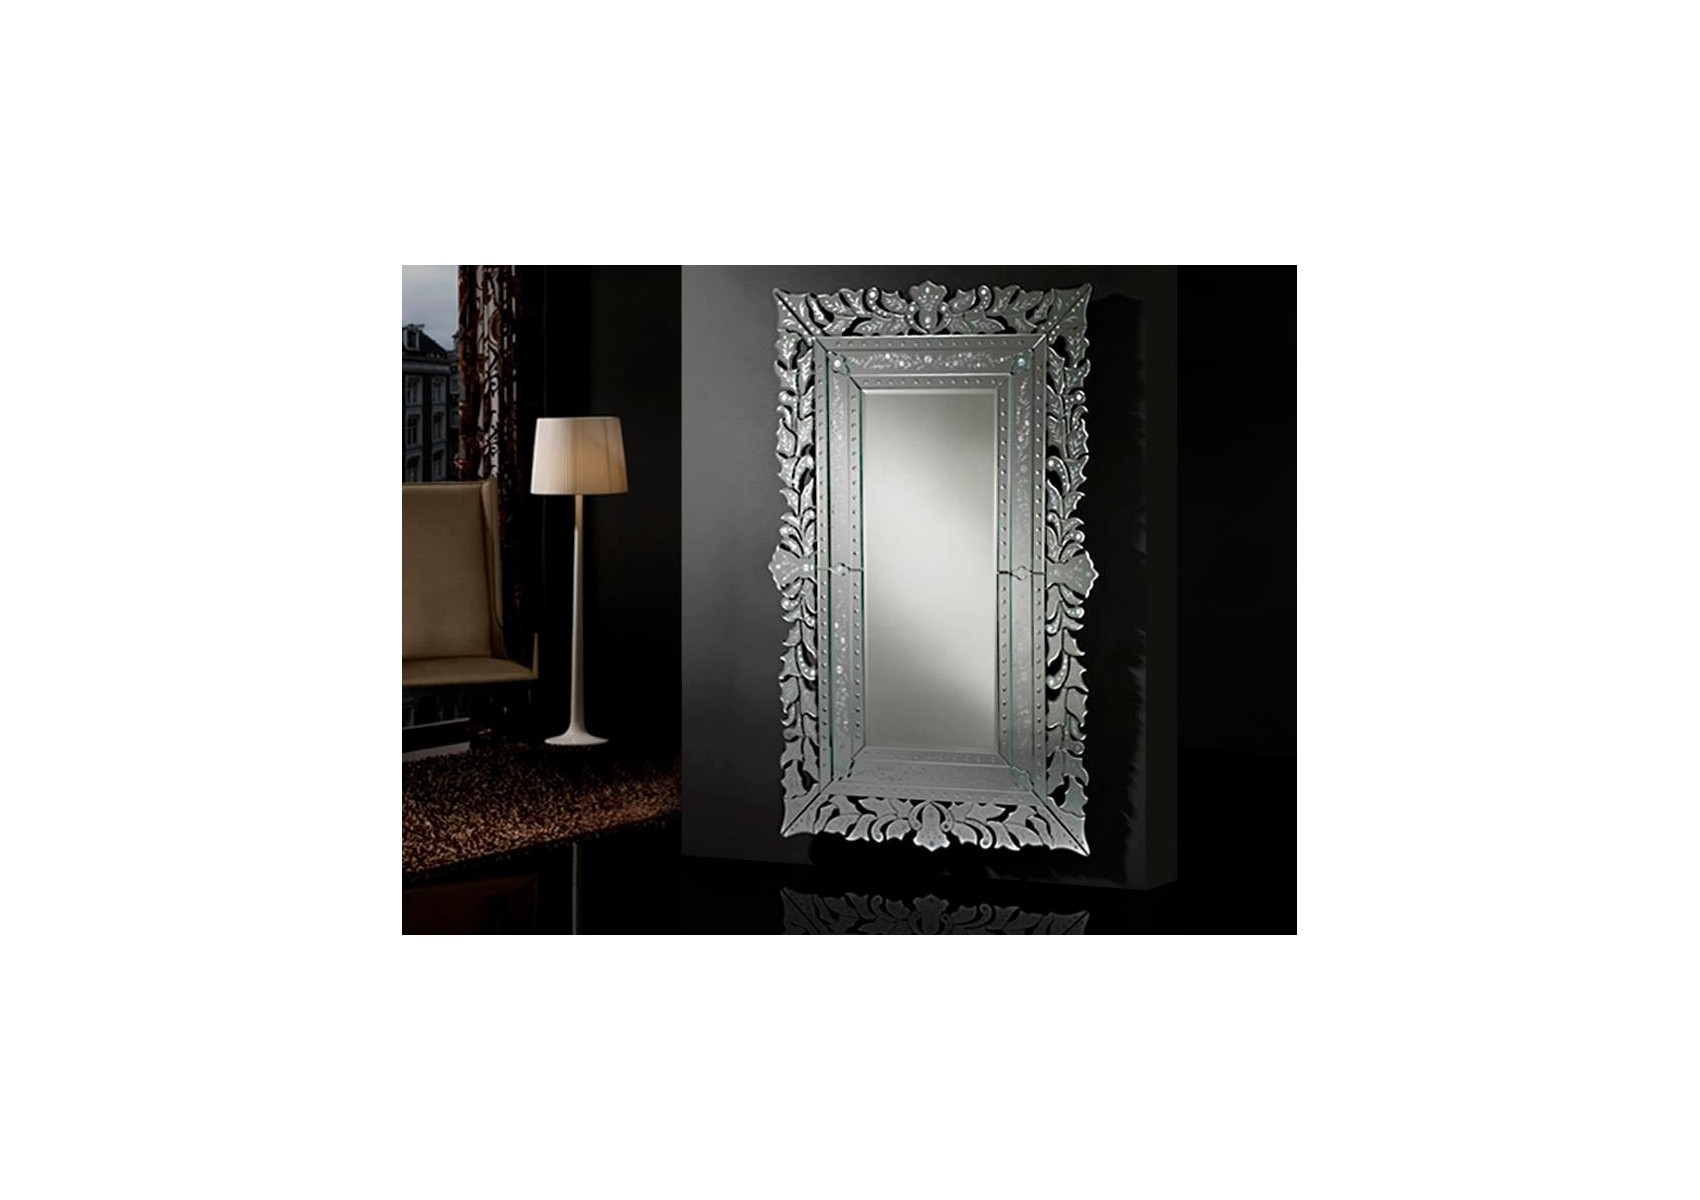 Miroir original design grand cleopatra deco schuller for Miroir original